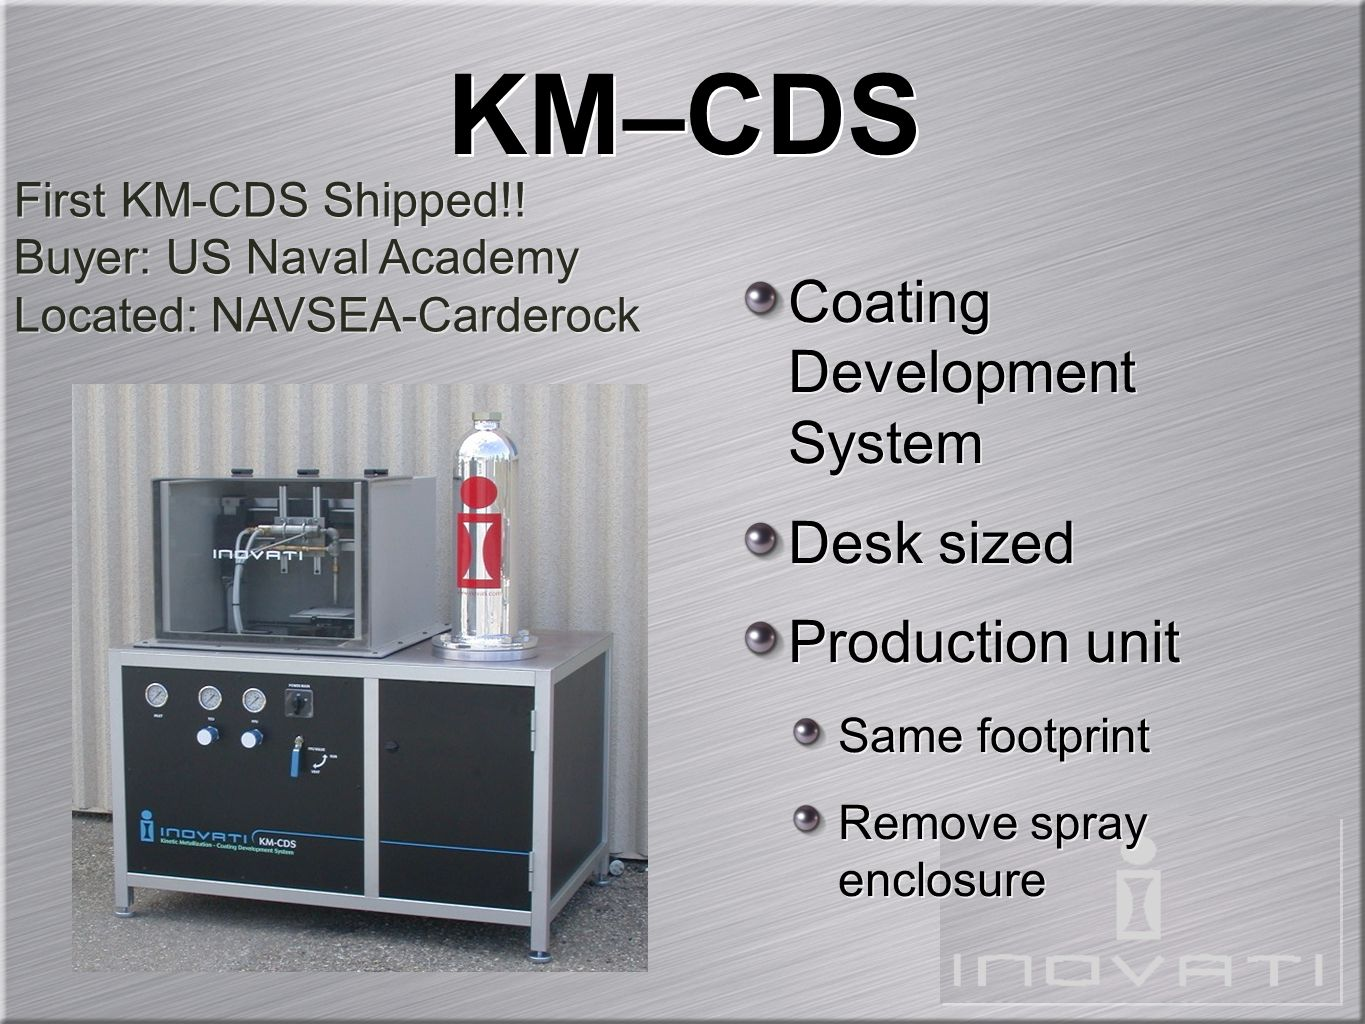 KM WC-Co Borehole Drill Bit Heads Wear resistant WC-Co Applied to steel surfaces Improved adhesion over Detonation Gun Coatings Borehole Drill Bit Heads Wear resistant WC-Co Applied to steel surfaces Improved adhesion over Detonation Gun Coatings